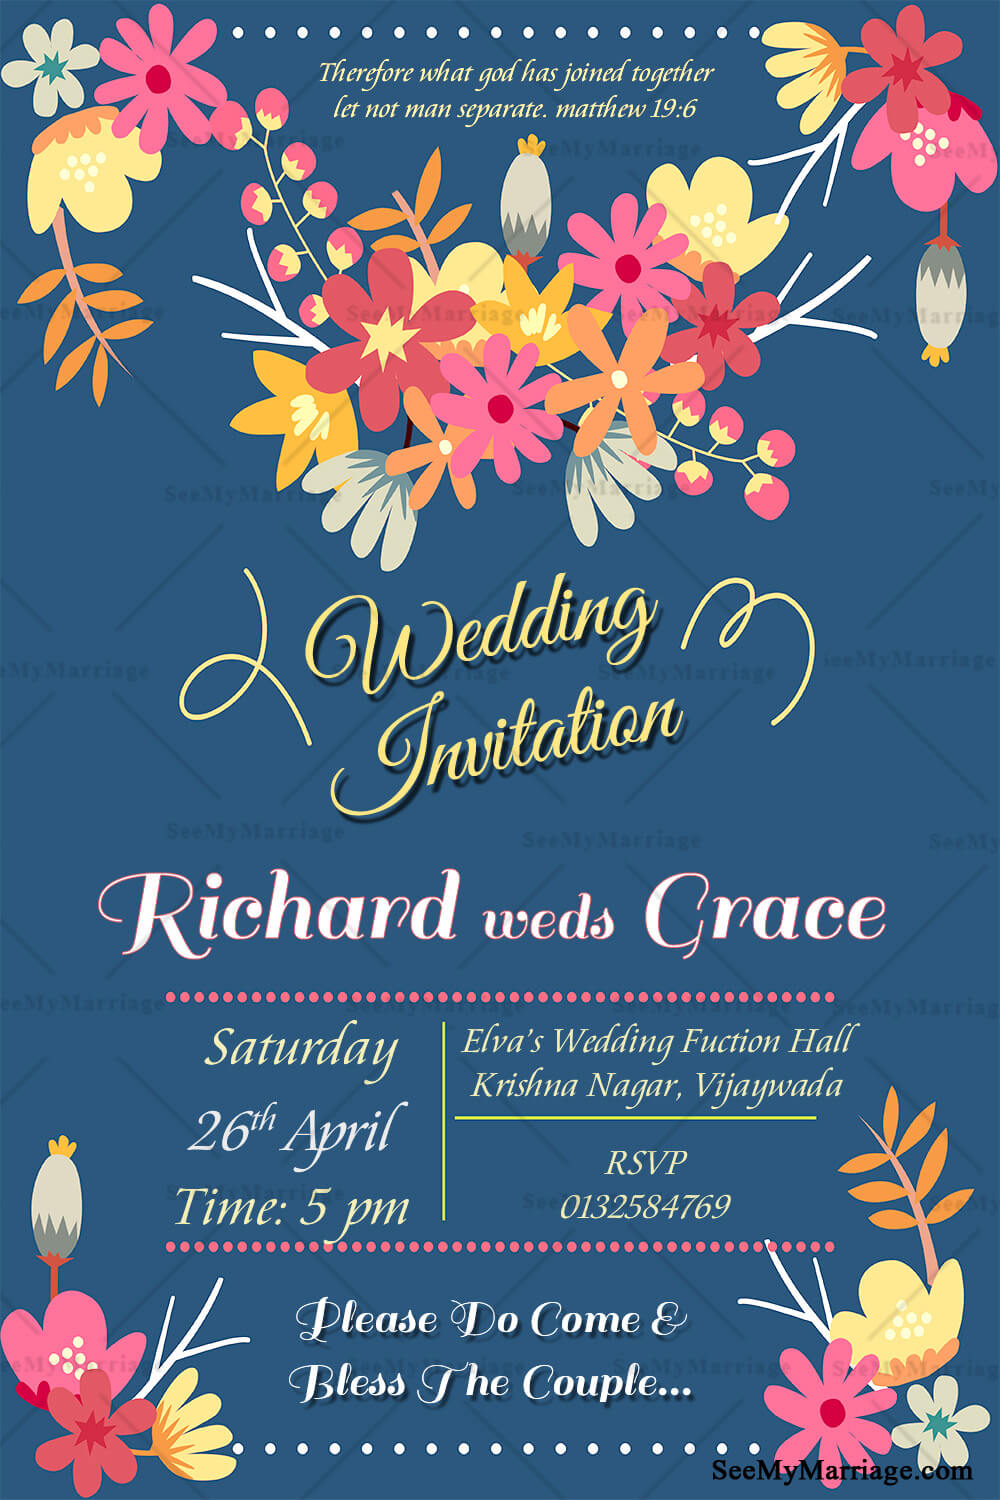 a fulfilling marriage bluish floral theme traditional